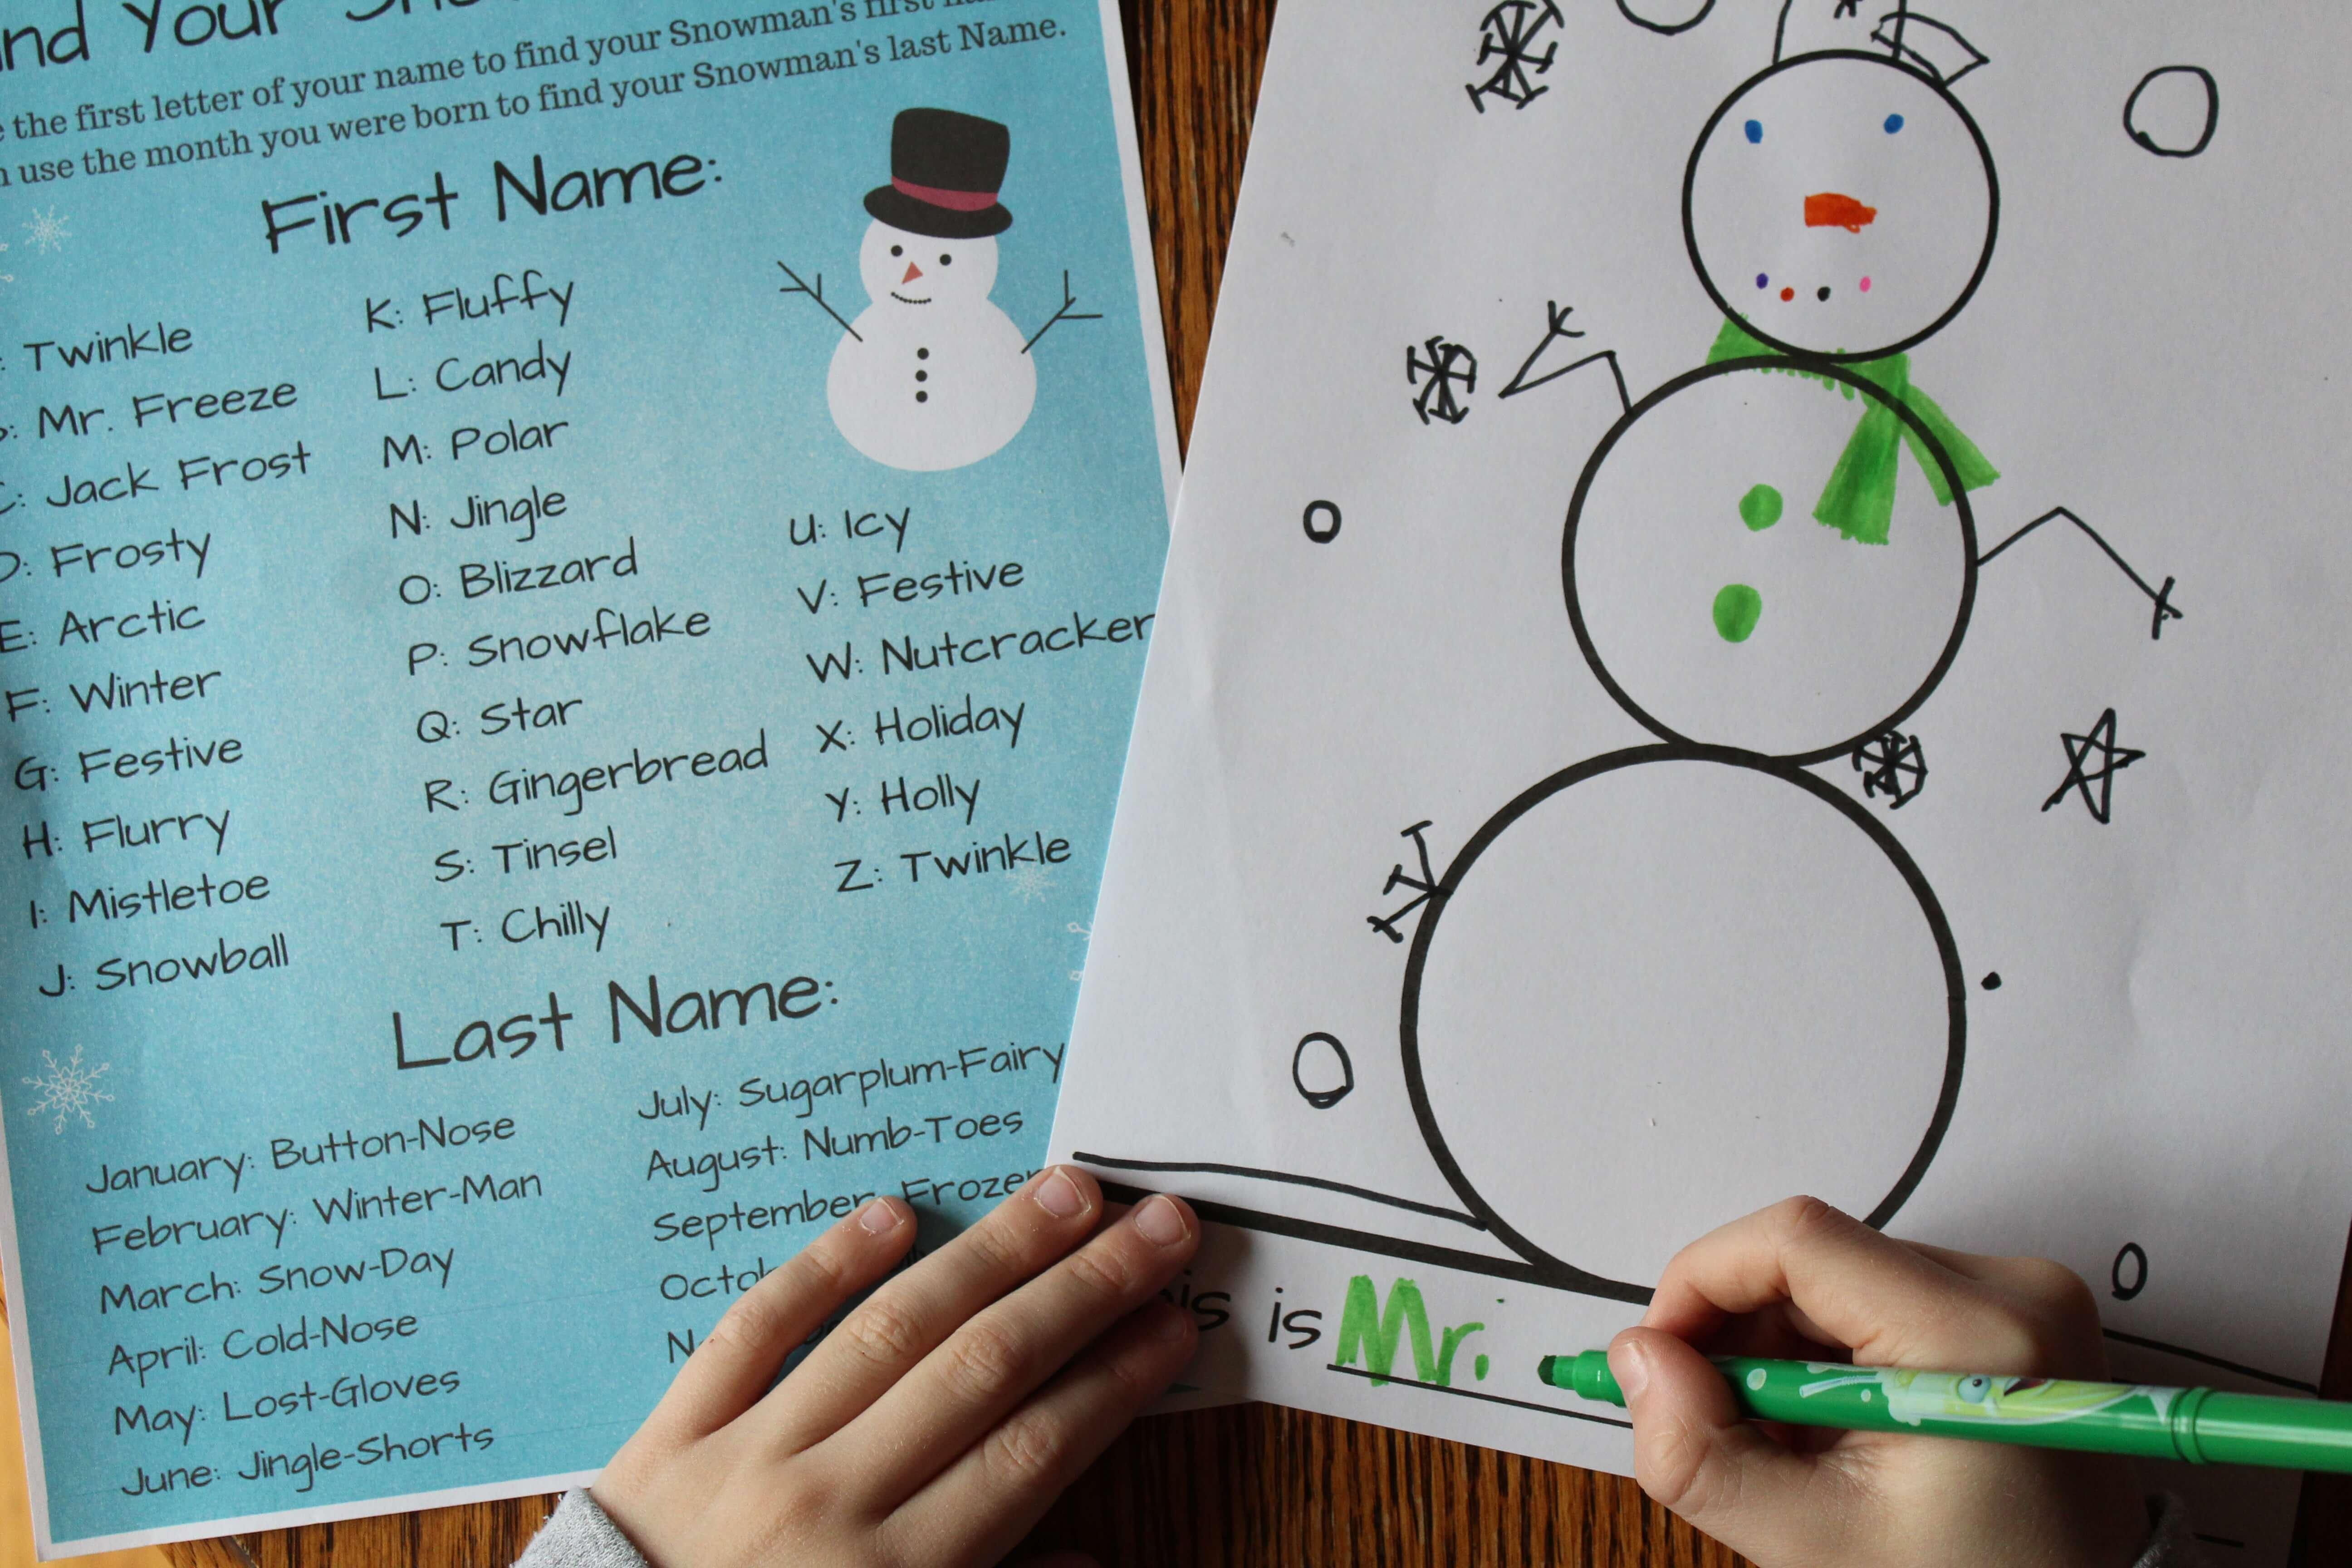 Fun And Simple Snowman Art Project For Classrooms Projects Holiday Class Parties